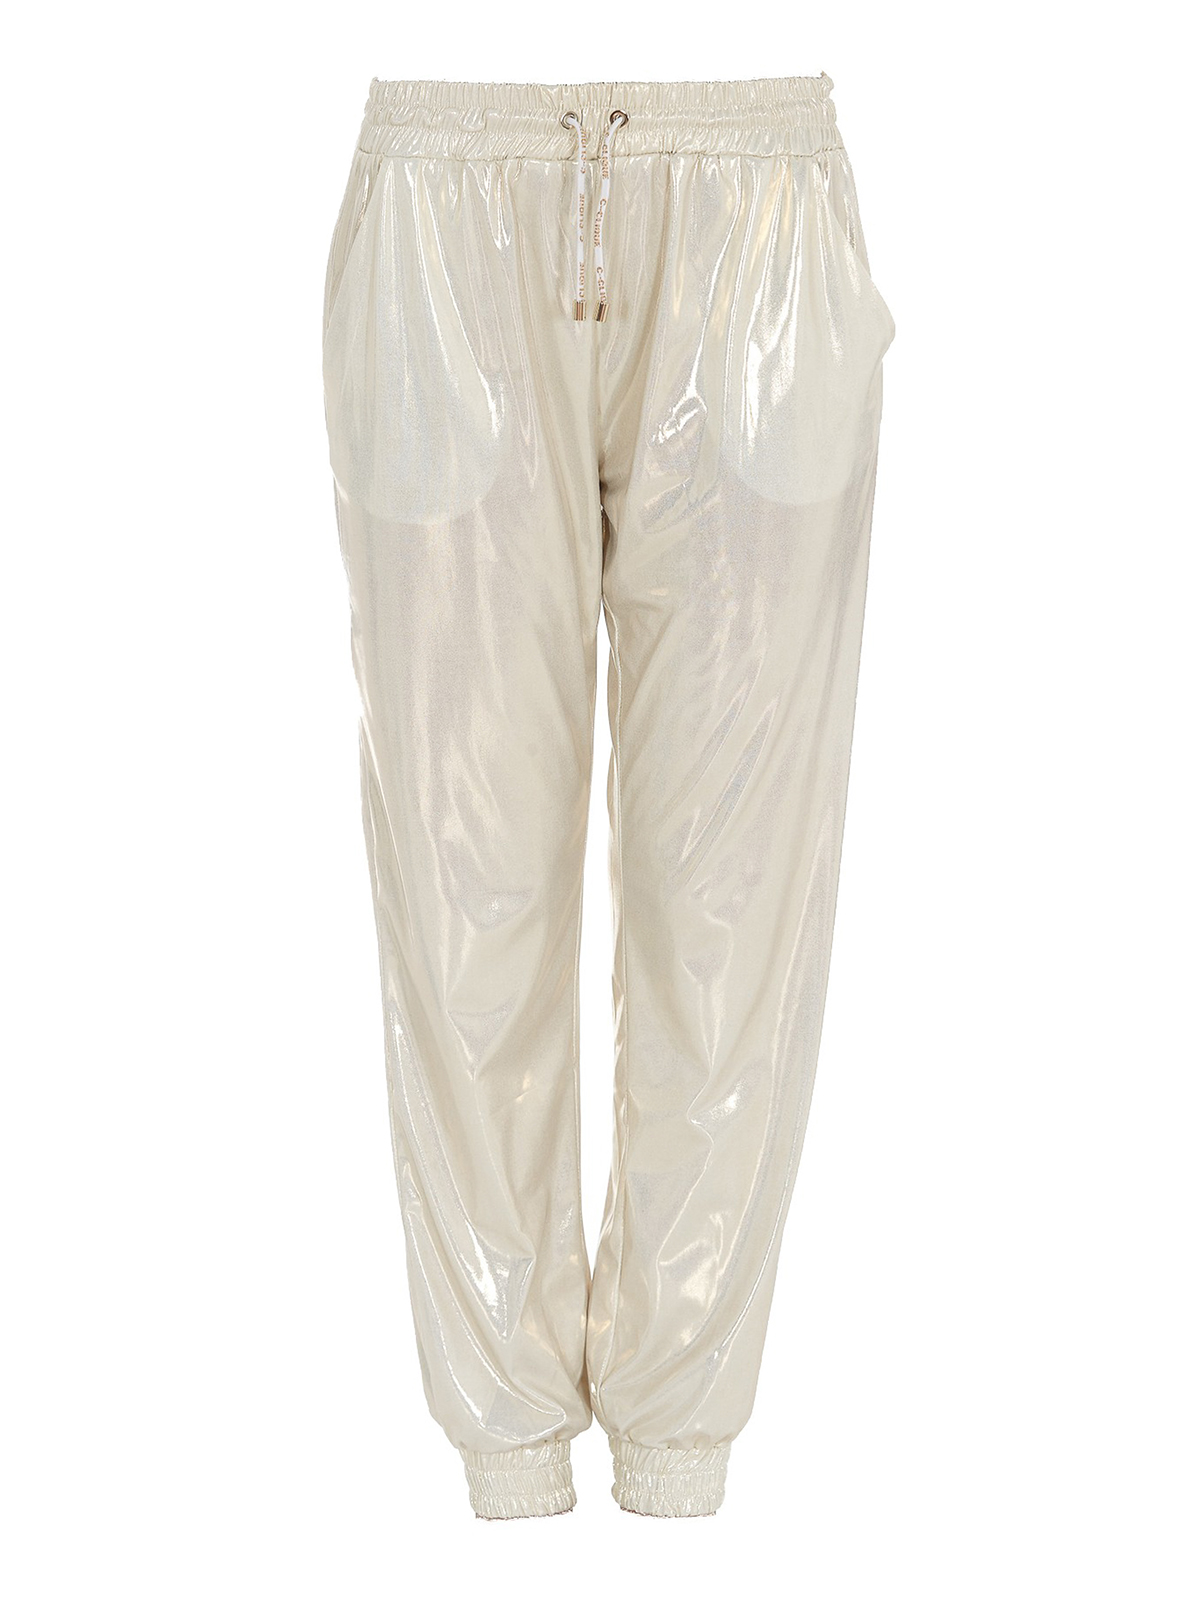 Pinko LAMINATED FABRIC PANTS